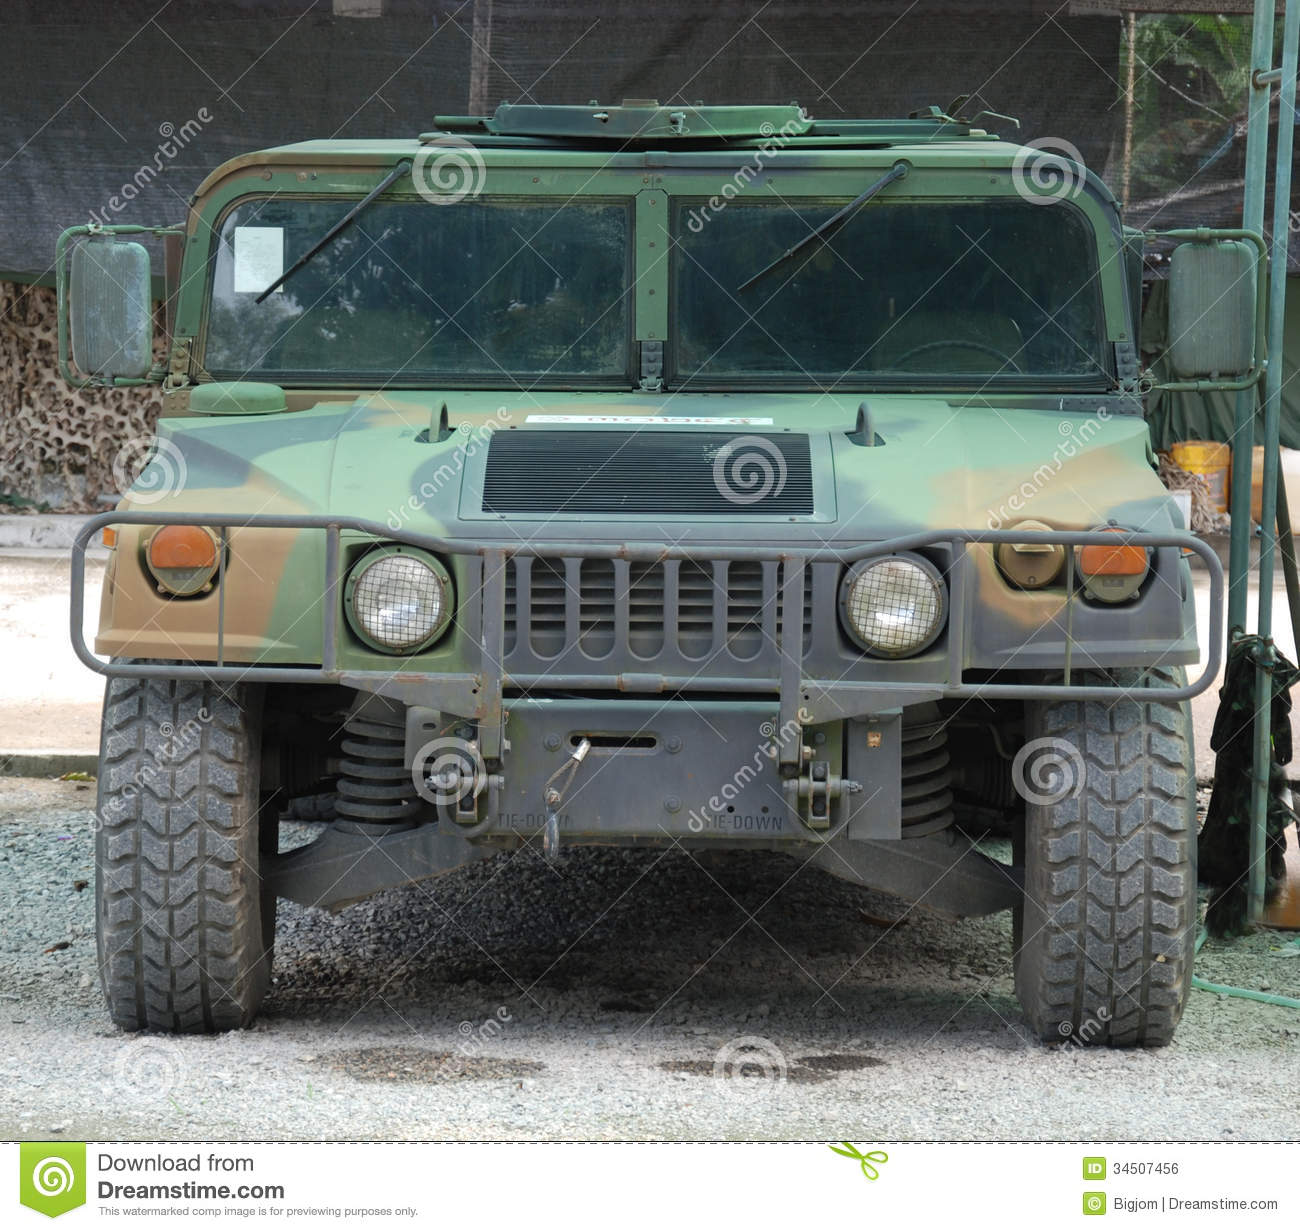 Green Jeep Wrangler >> Military Vehicle Hummer stock photo. Image of fighting - 34507456